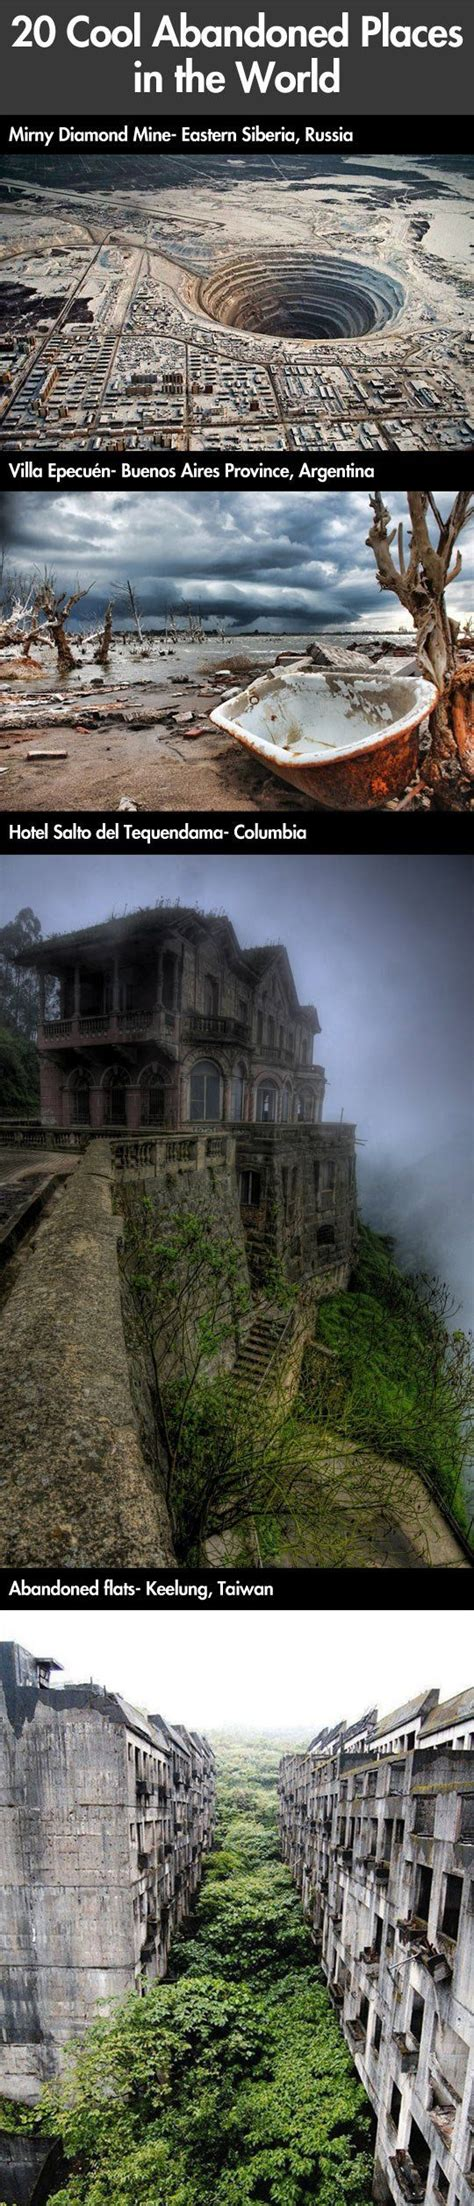 cool abandoned places 28 of the coolest abandoned places in the world therackup